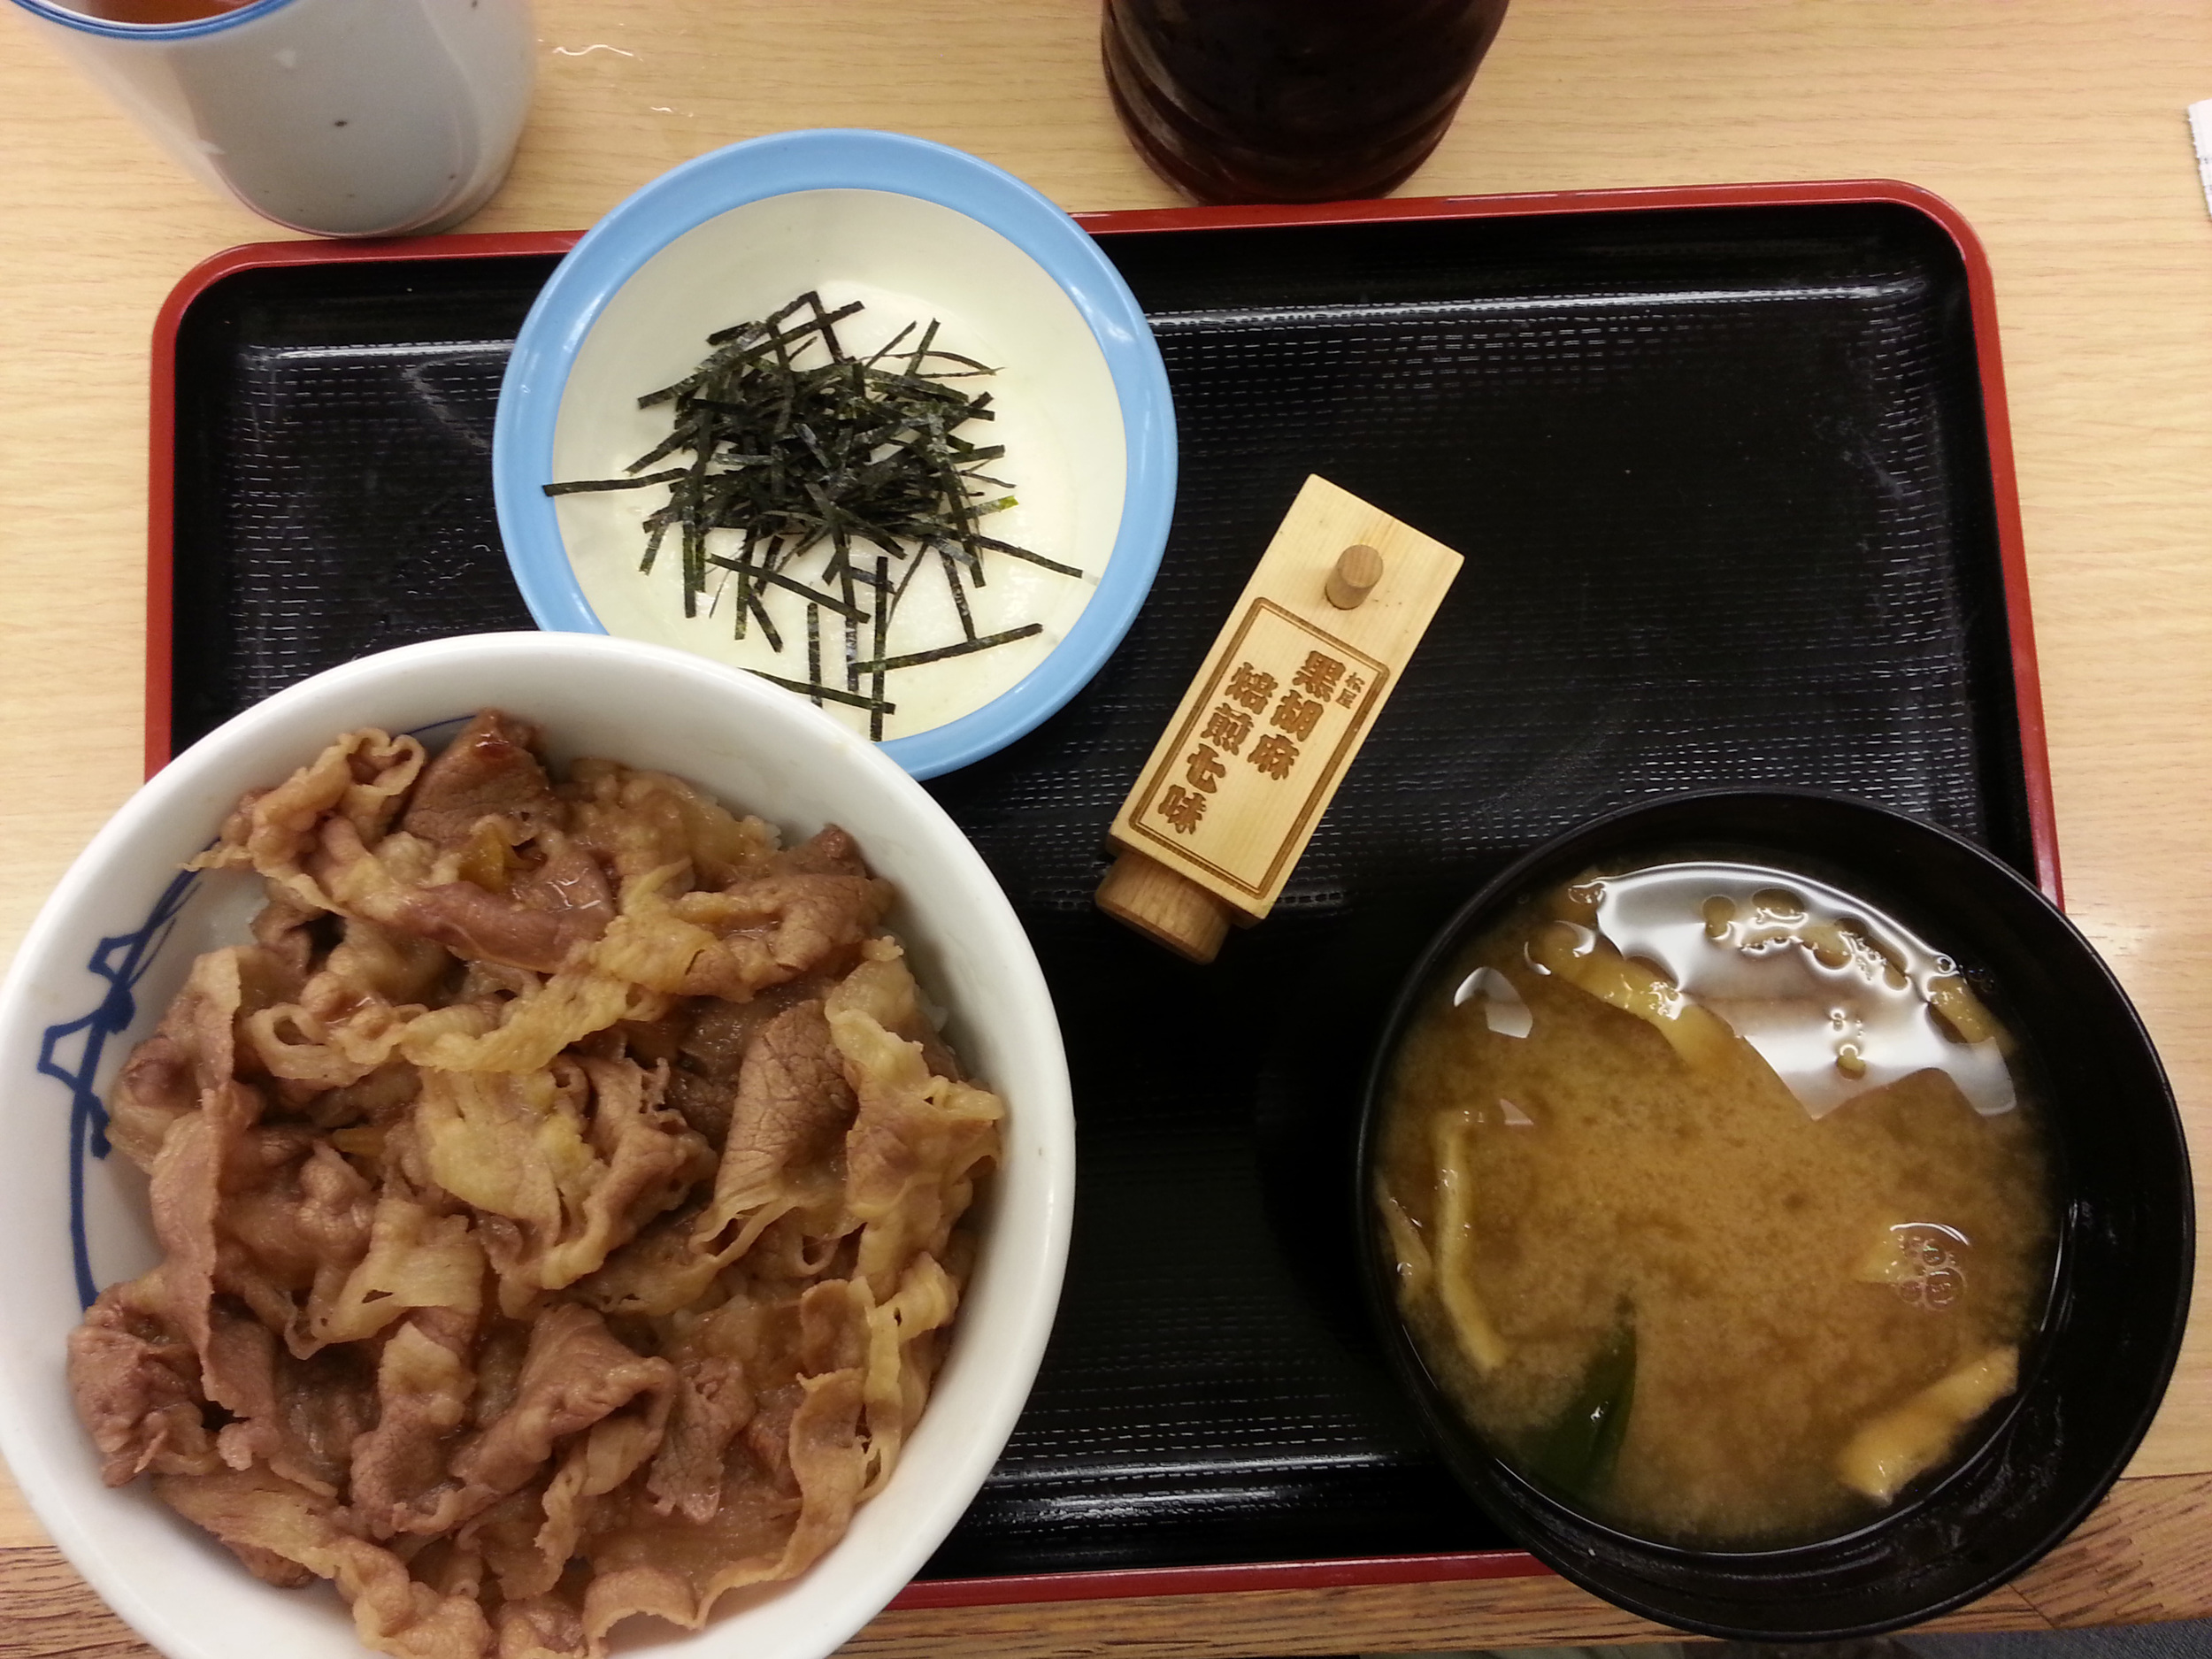 Our first meal in Japan. Beef bowl with rice, miso soup and grated yams. Price: $5